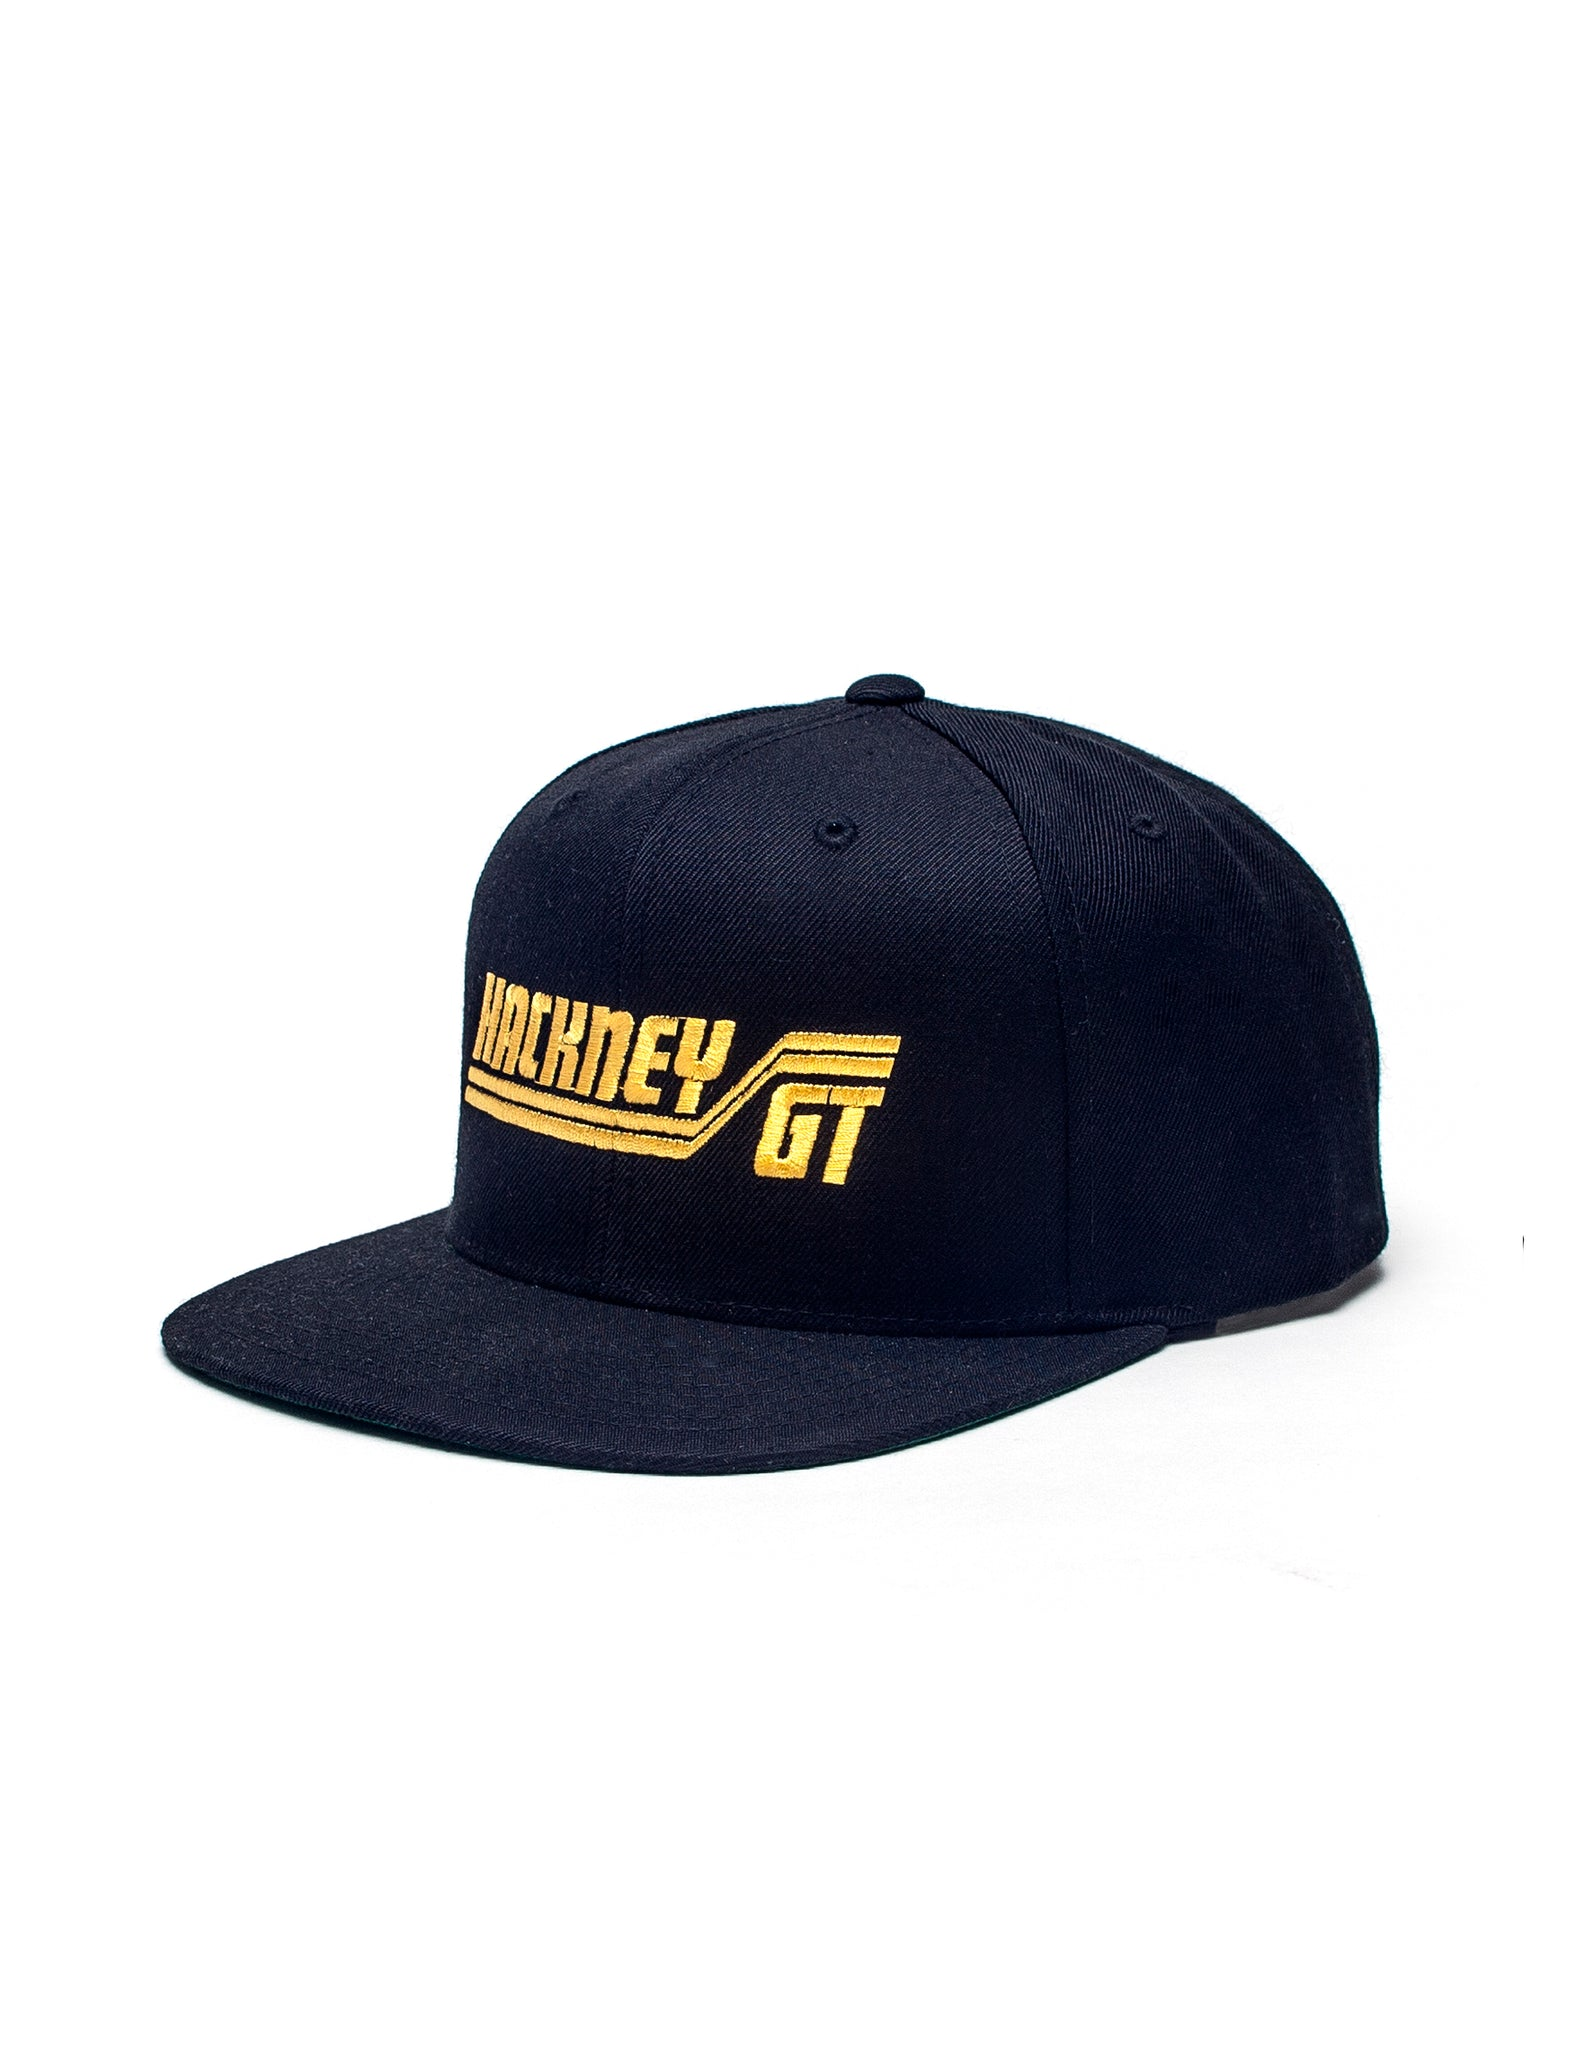 Hackney GT snapback cap black yellow